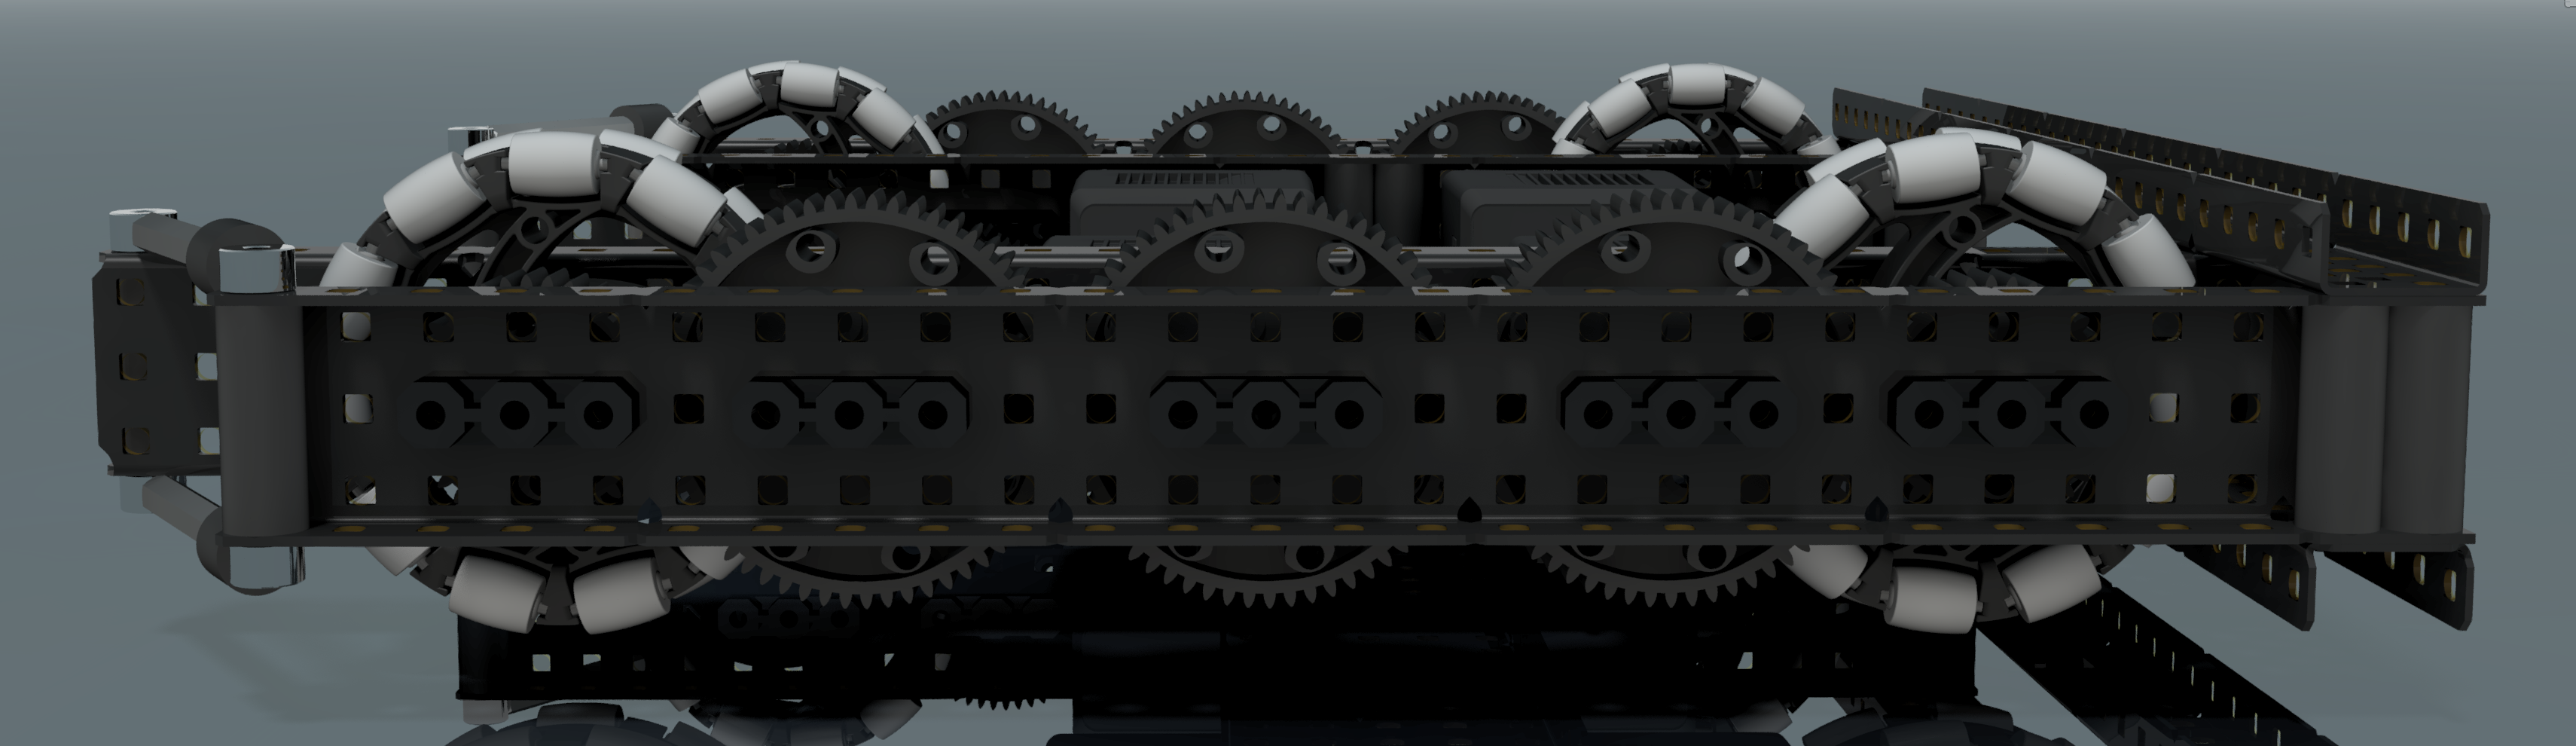 Chassis v3 side view